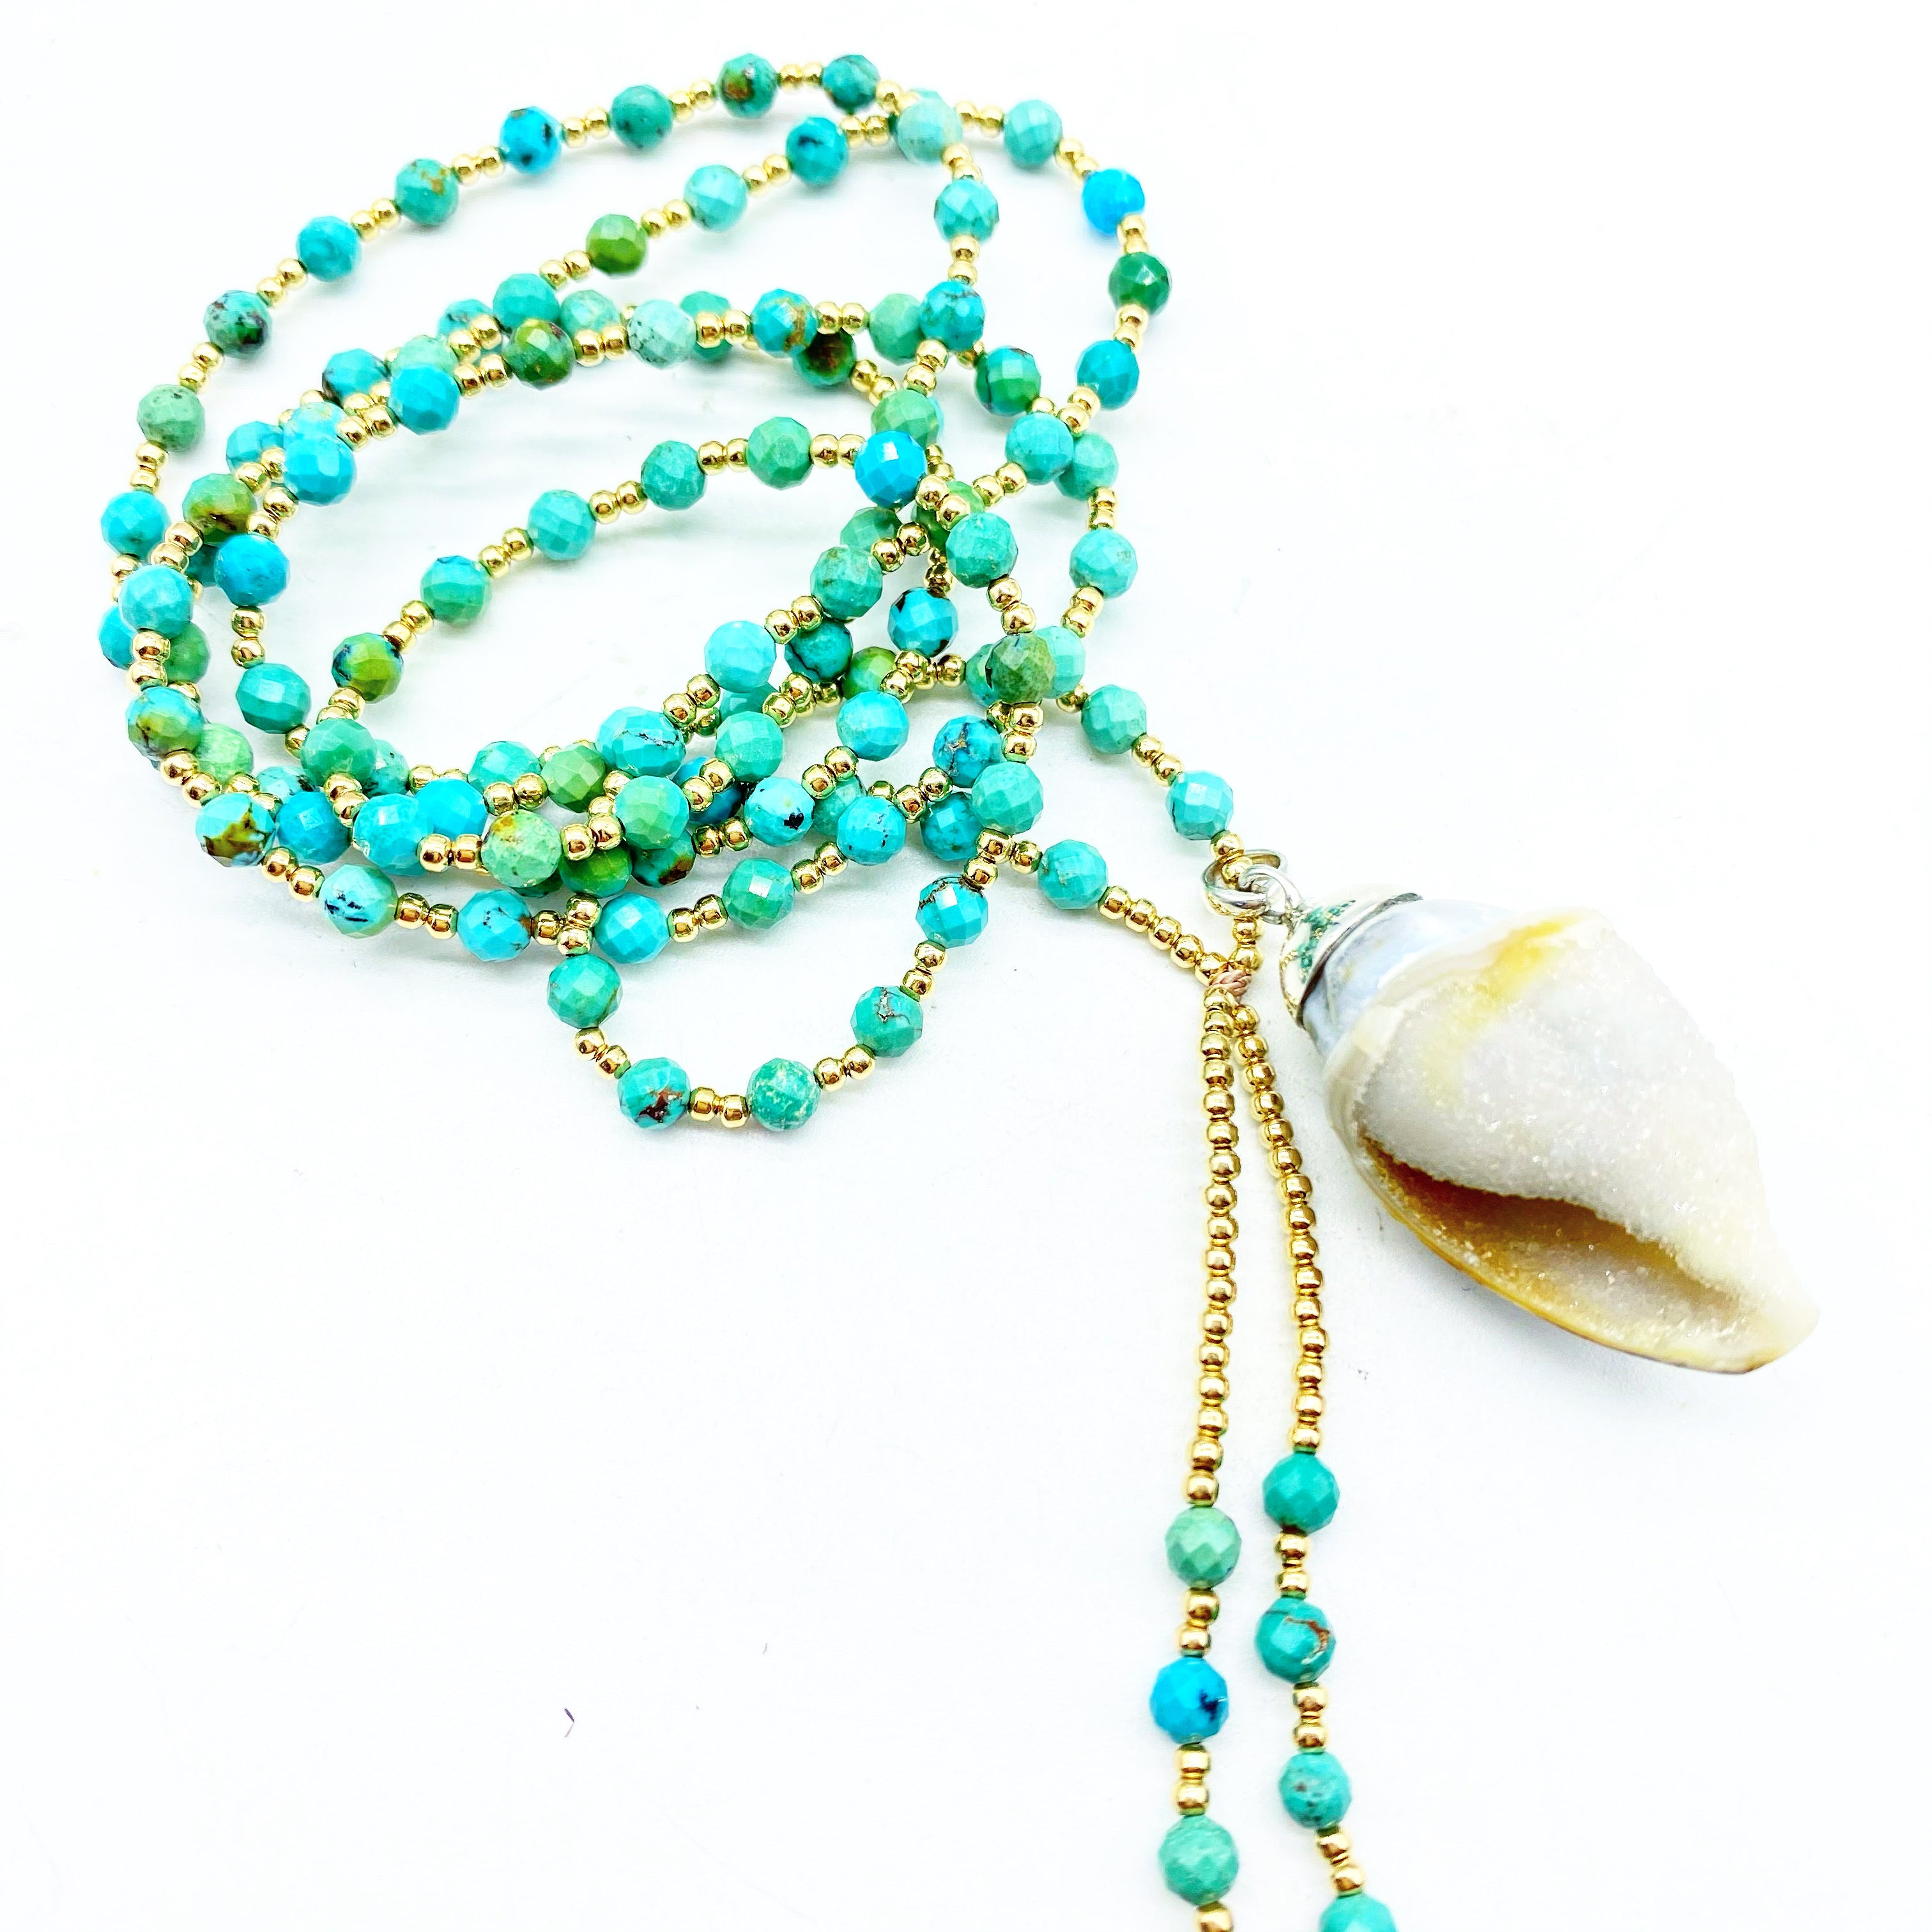 GEMSTONE MALAS WITH CRYSTAL SHELLS